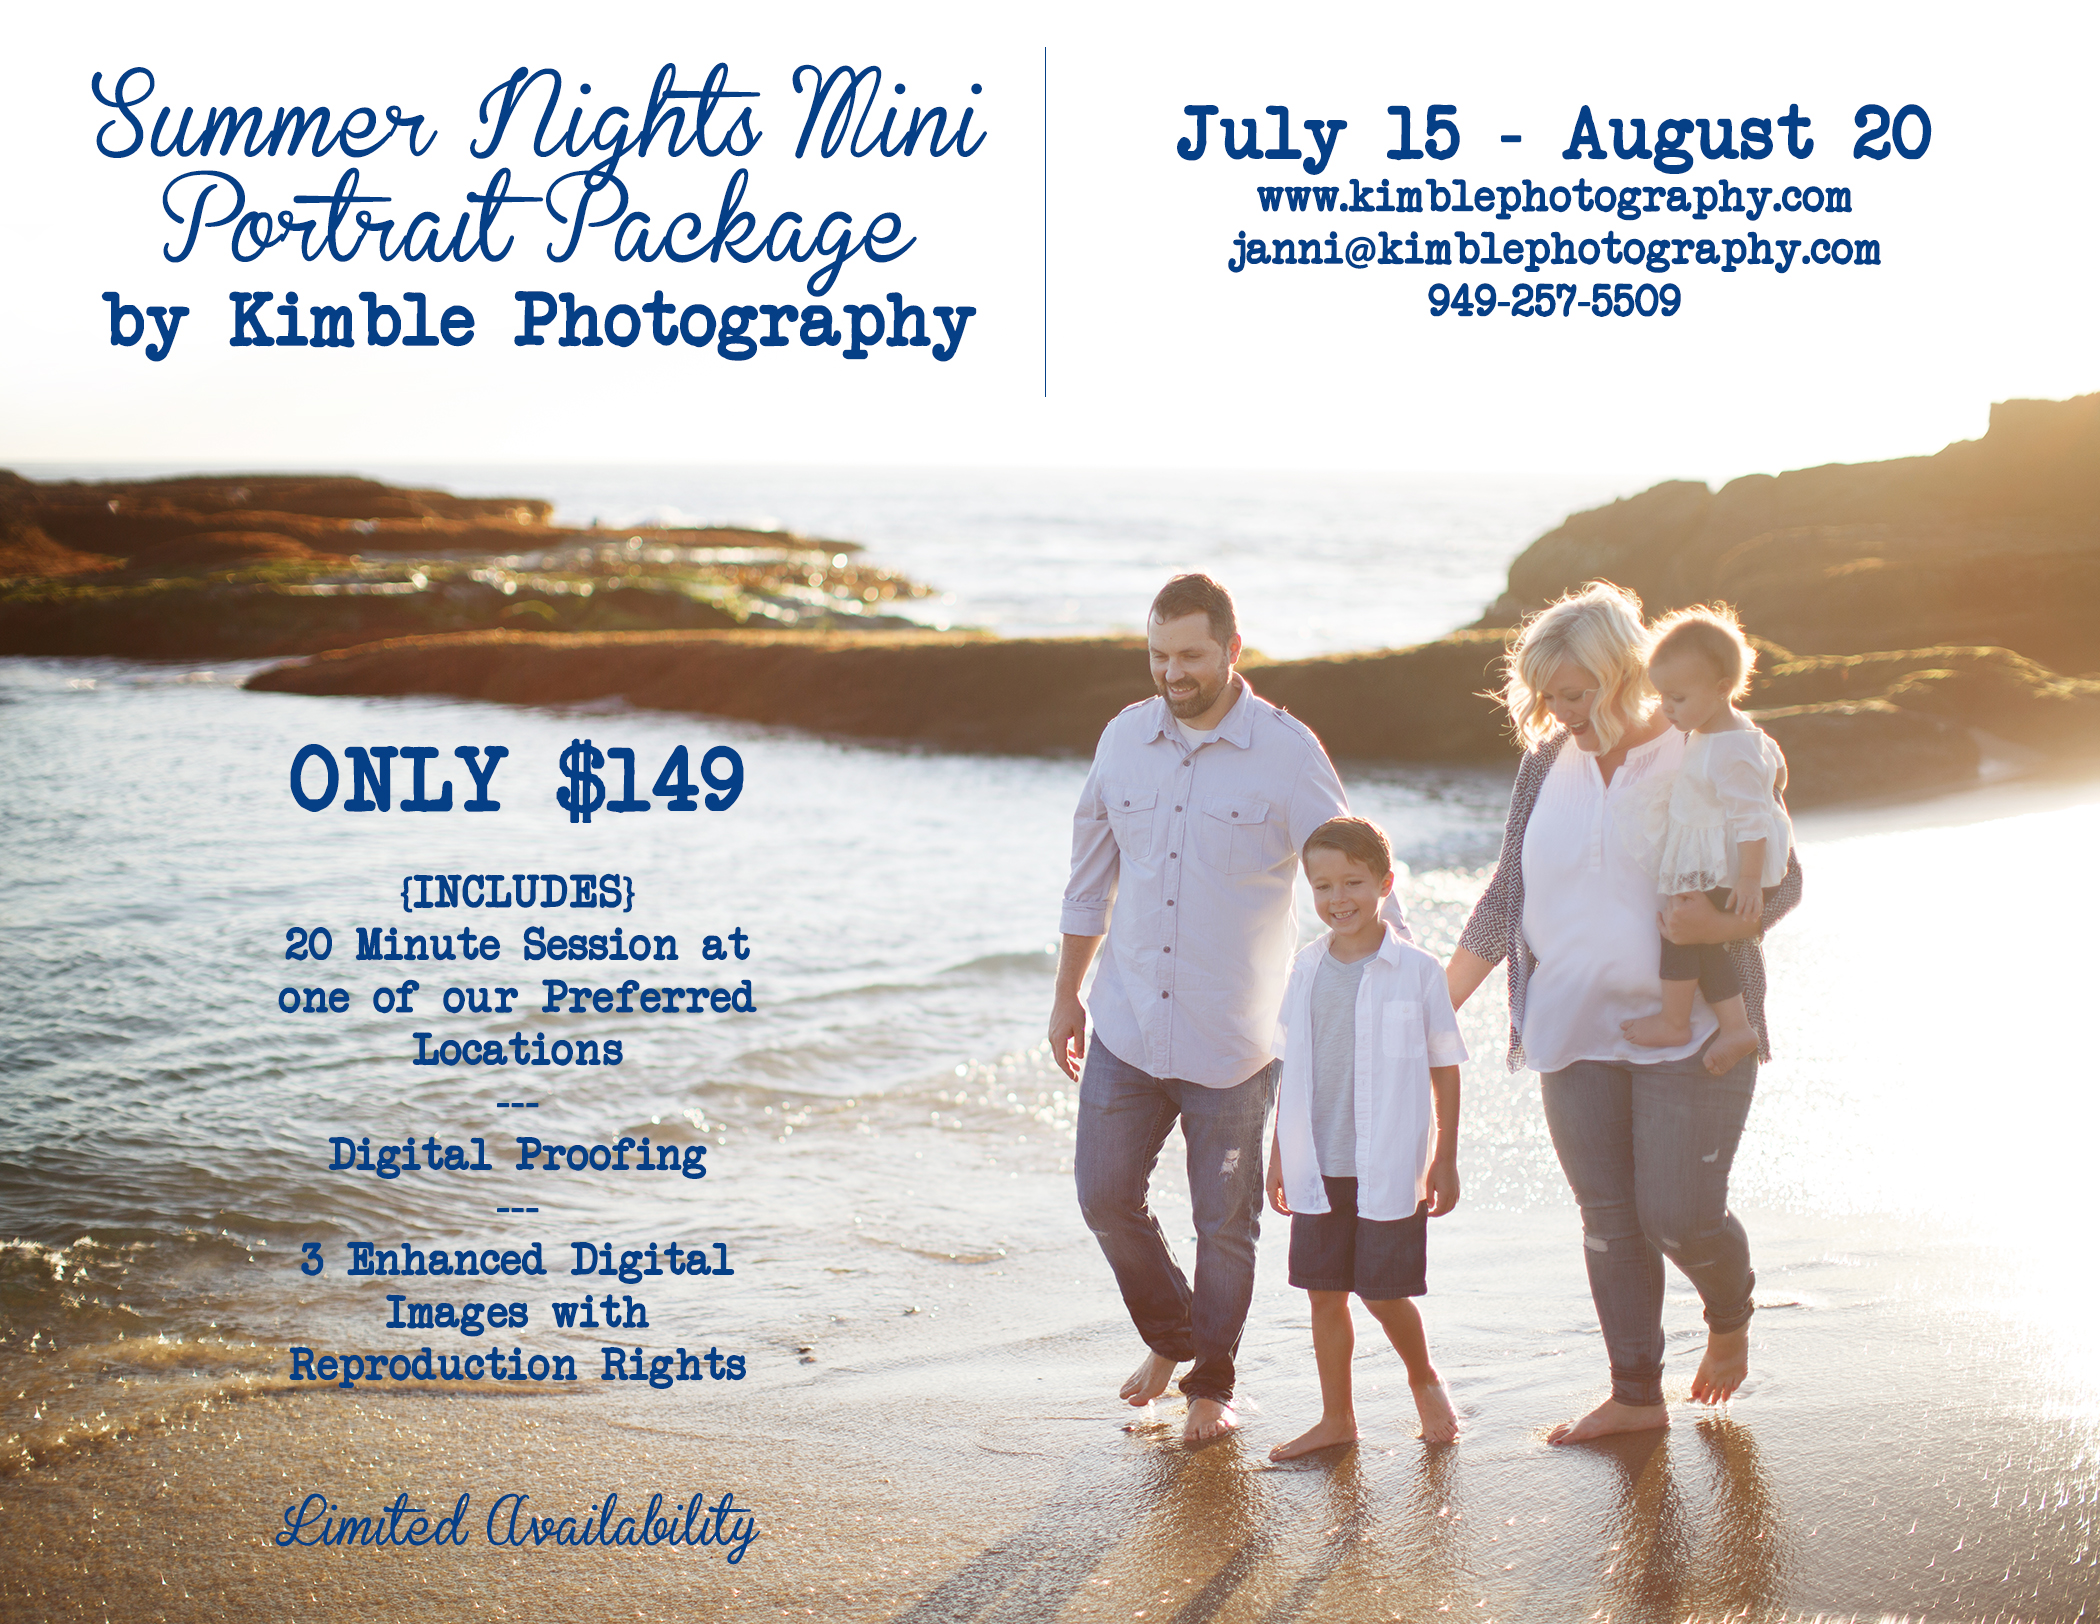 Summer Portrait Package | Kimble Photography